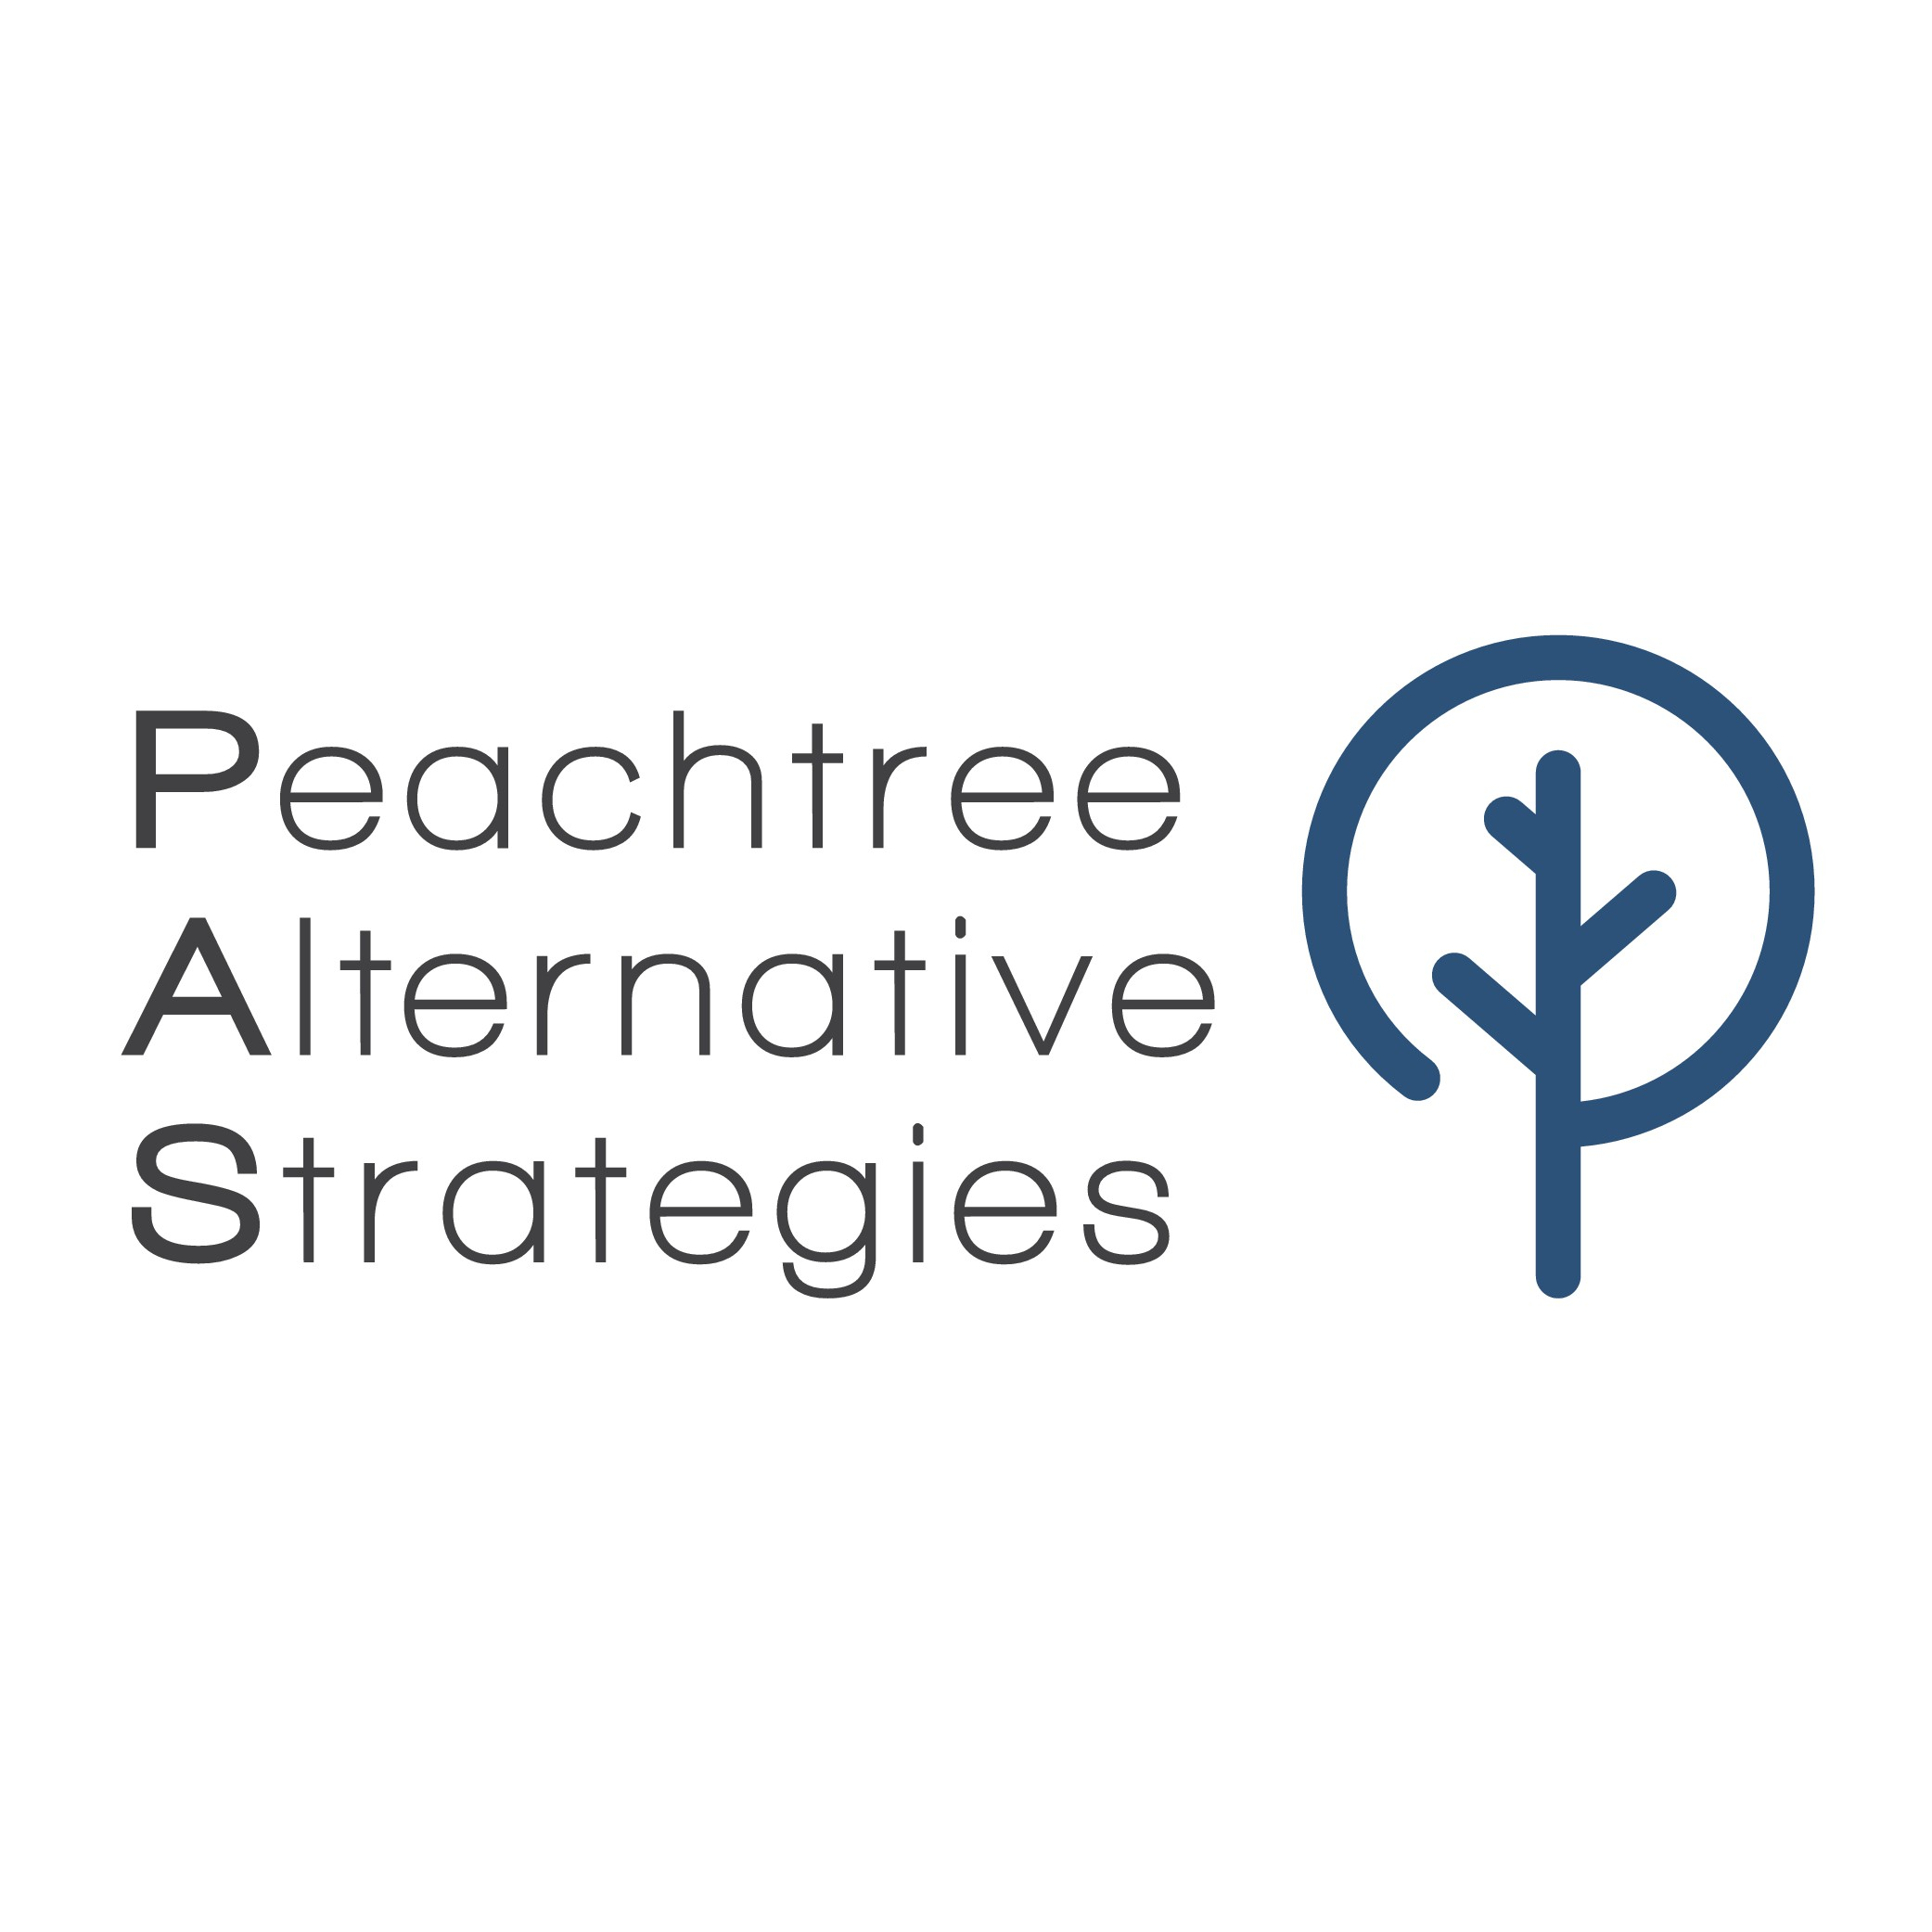 We need a sophisticated, modern logo for our investment fund, Peachtree Alternative Strategies.